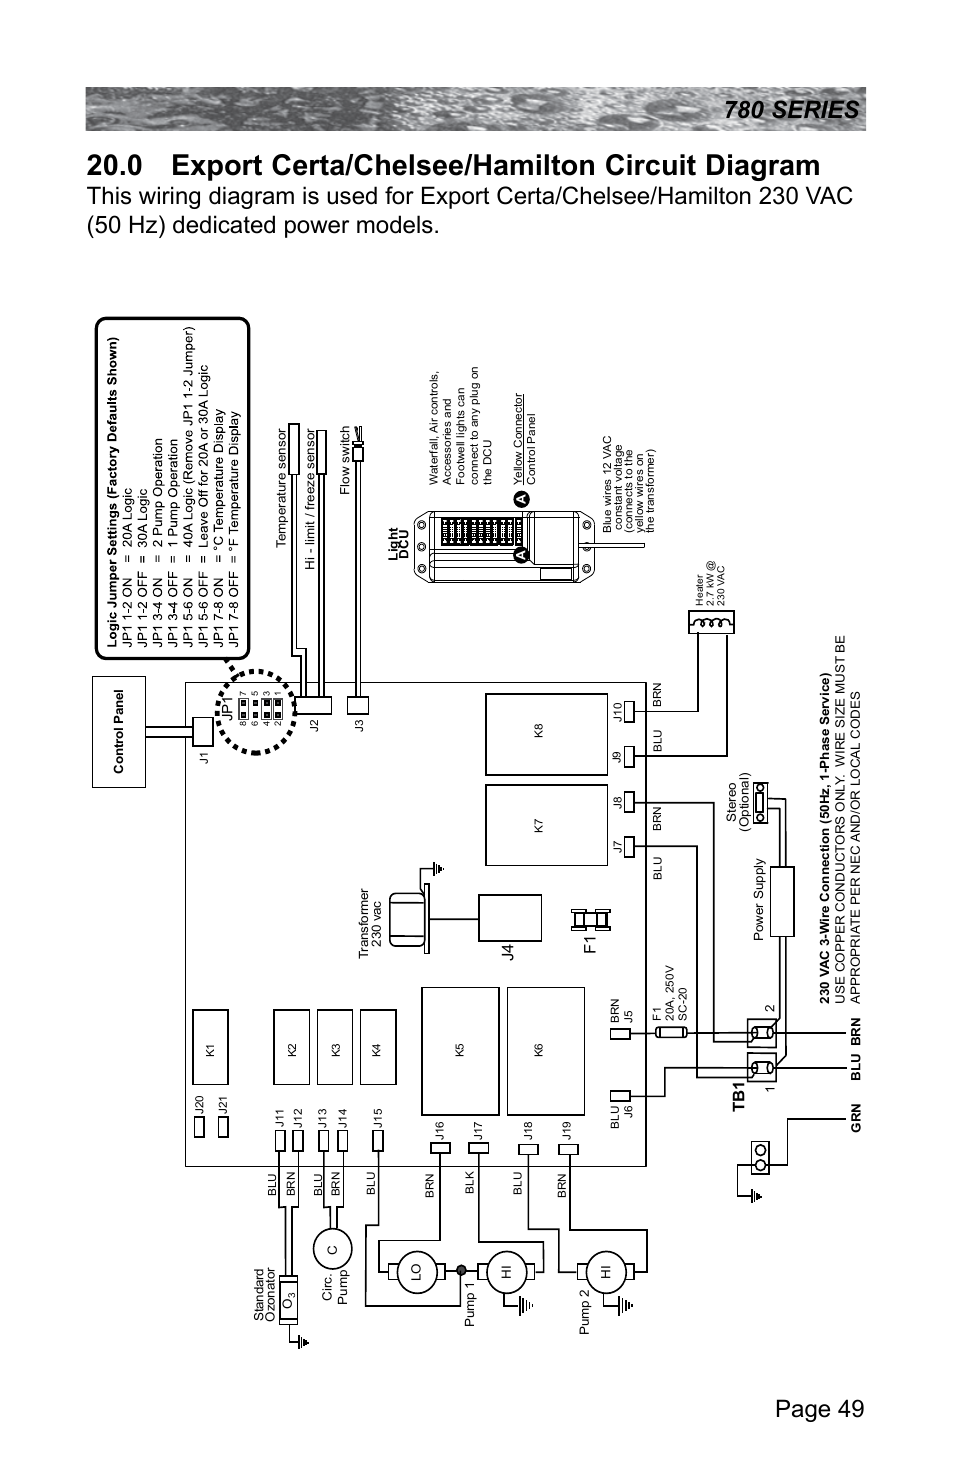 Sundance Chelsee Wiring Diagram And Schematics Nec Single Phase Meter 0 Export Certa Hamilton Circuit Spas Camden 780 User Manual Page 53 72